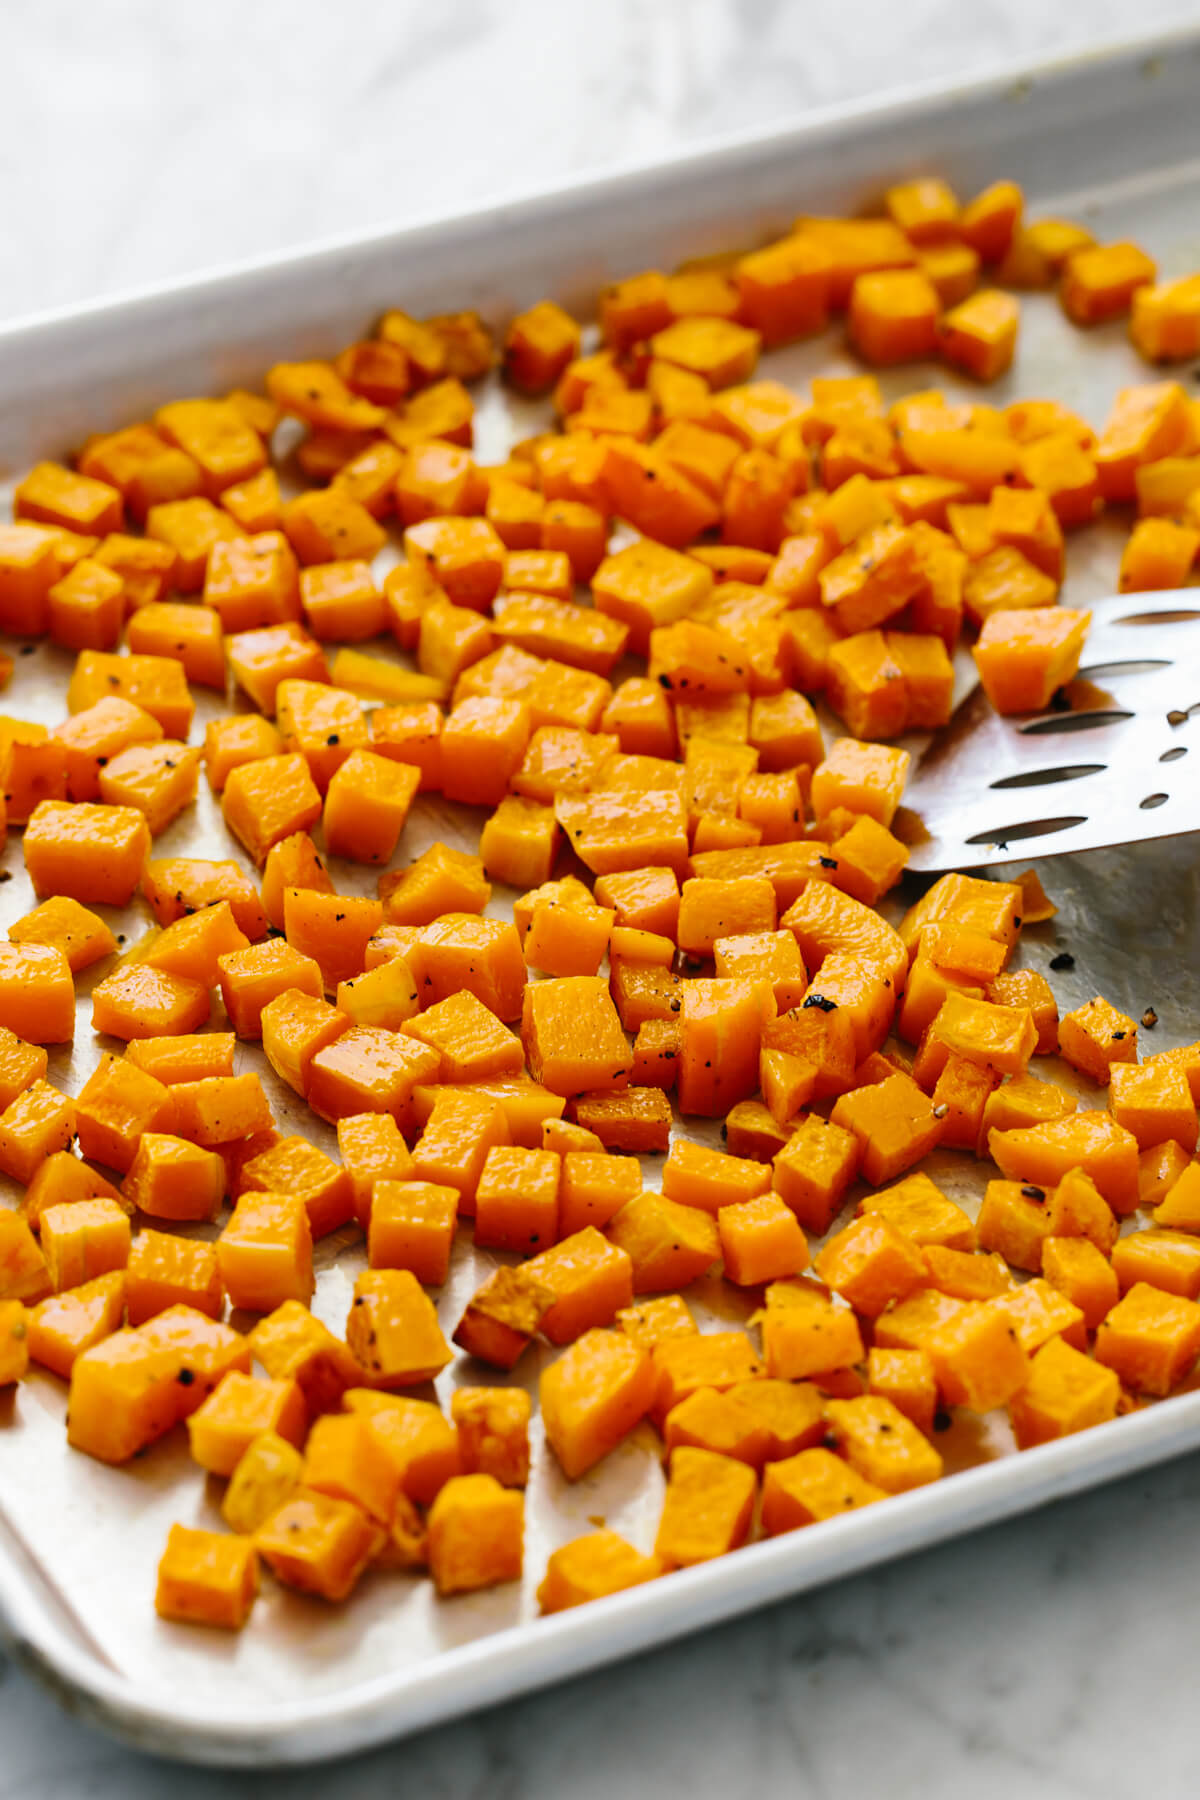 Roasted butternut squash cubes fresh out of the oven.